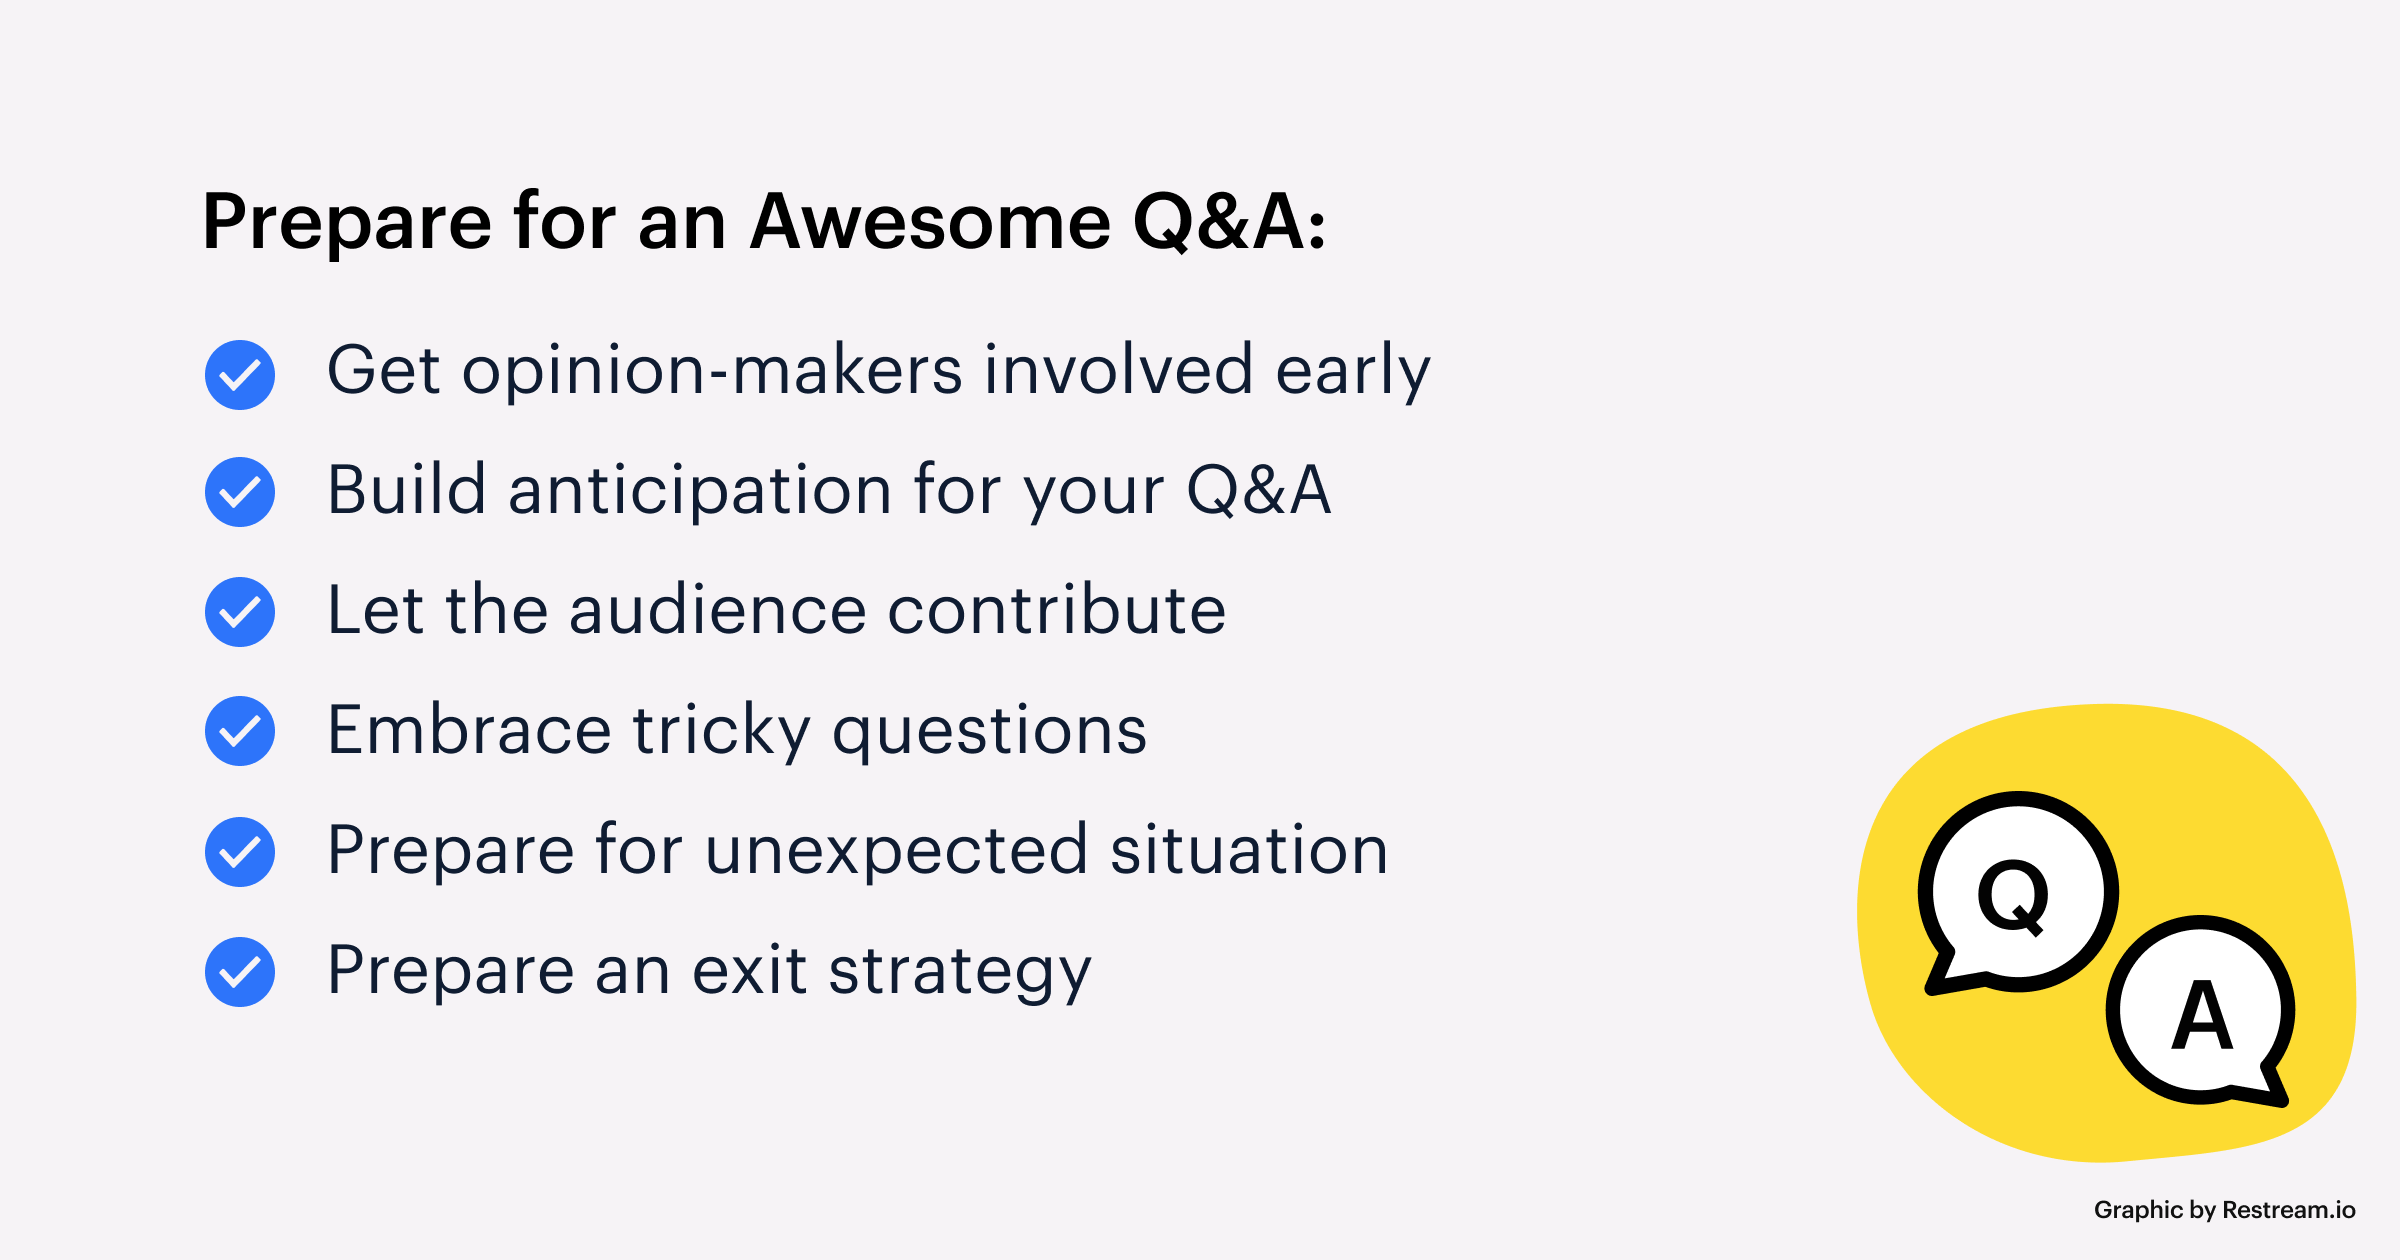 Prepare for a Q&A checklist